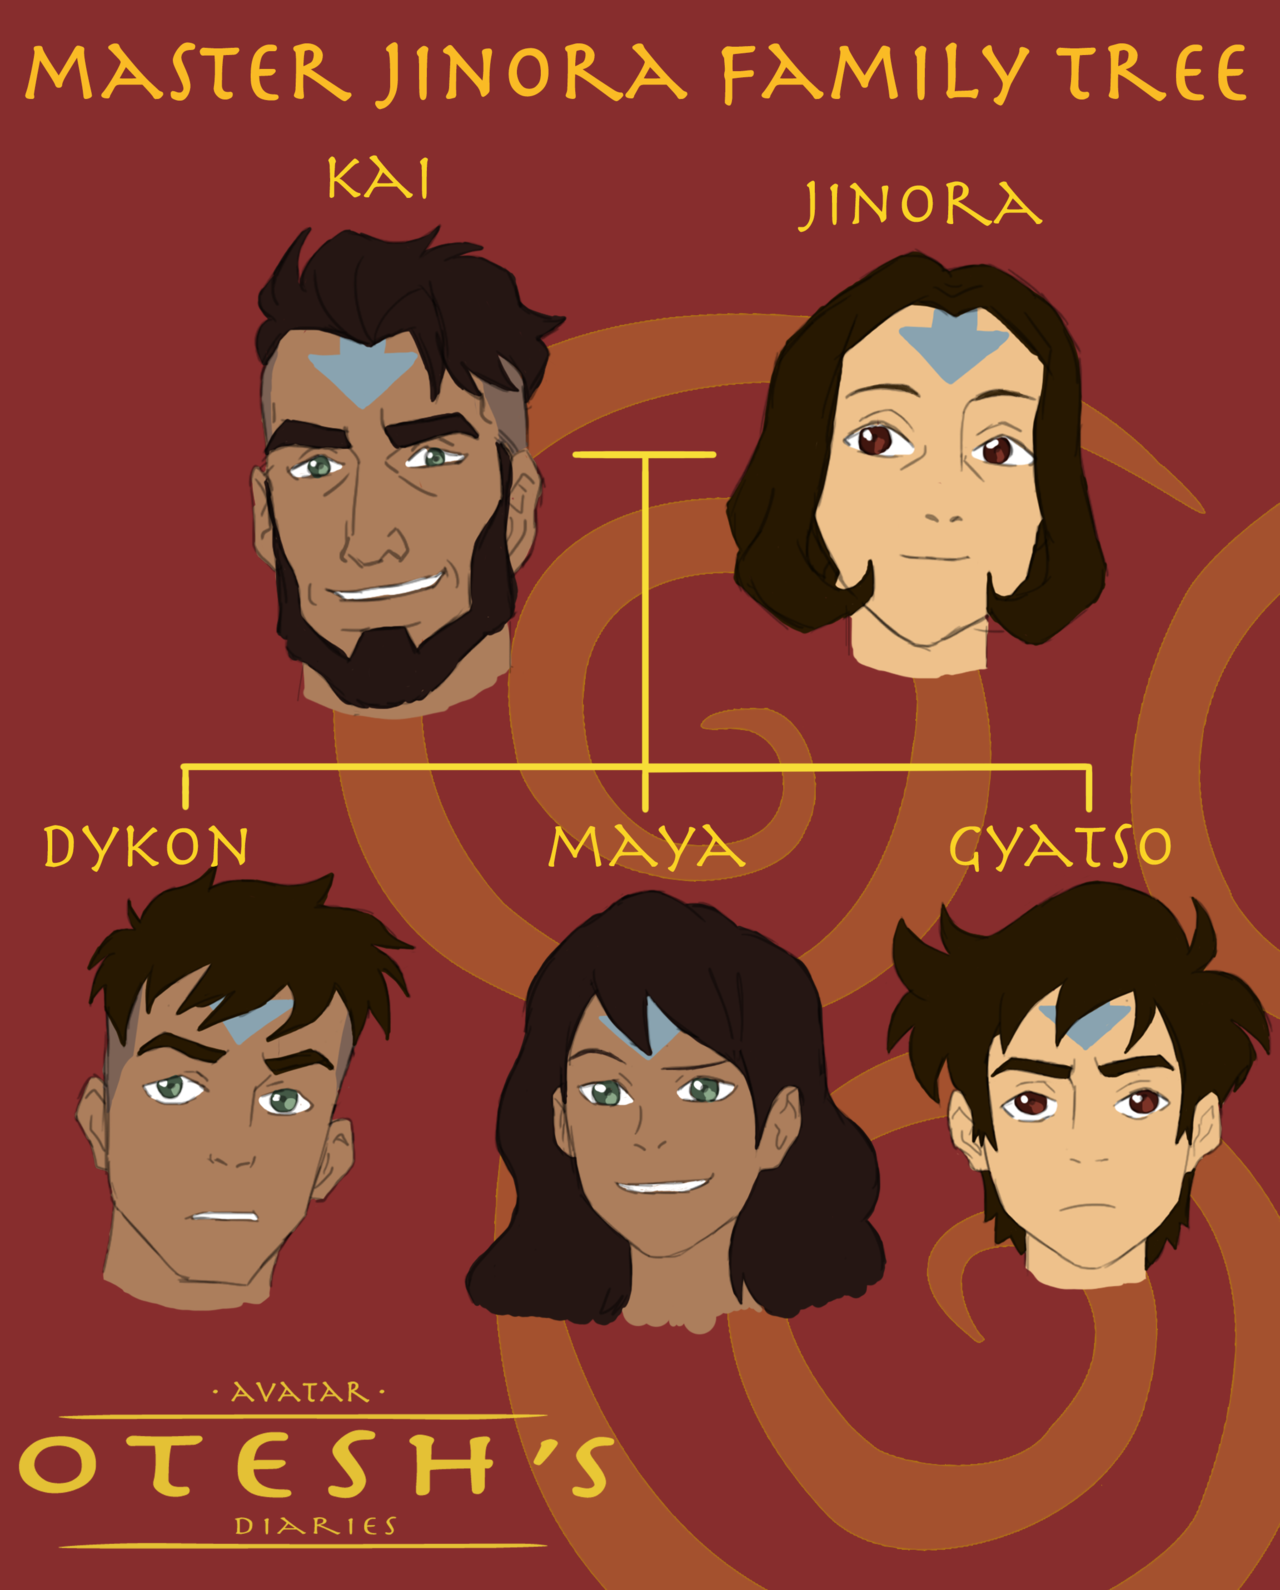 The Last Airbender Family Tree : airbender, family, Avatar, Otesh, Guys,, Sorry, Something, Wrong, My..., Family, Tree,, Disney, Characters,